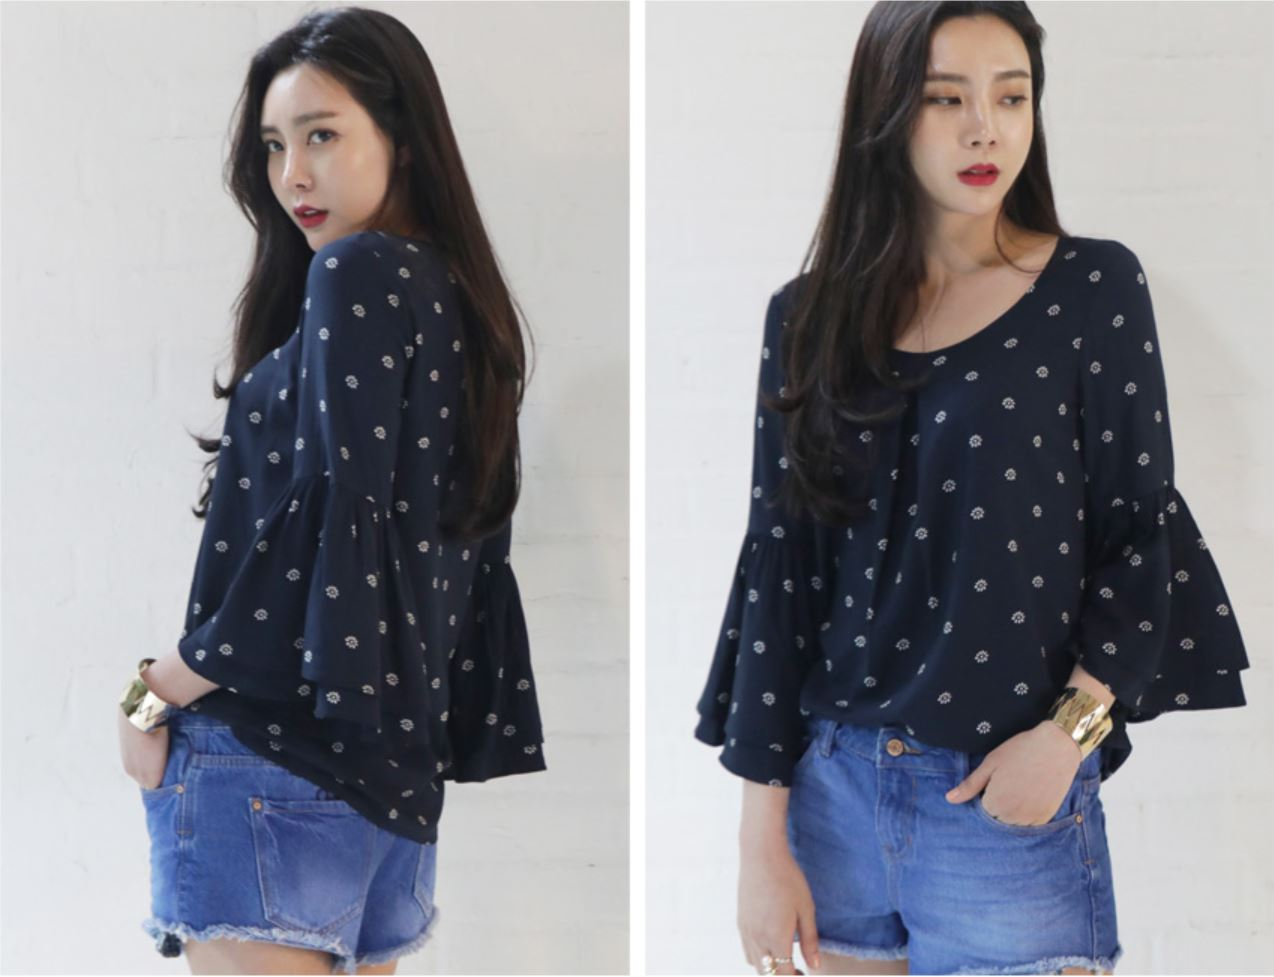 New fashion Style High Fashion Korean Ladies Cute Dual Bell sleeve blouse for women